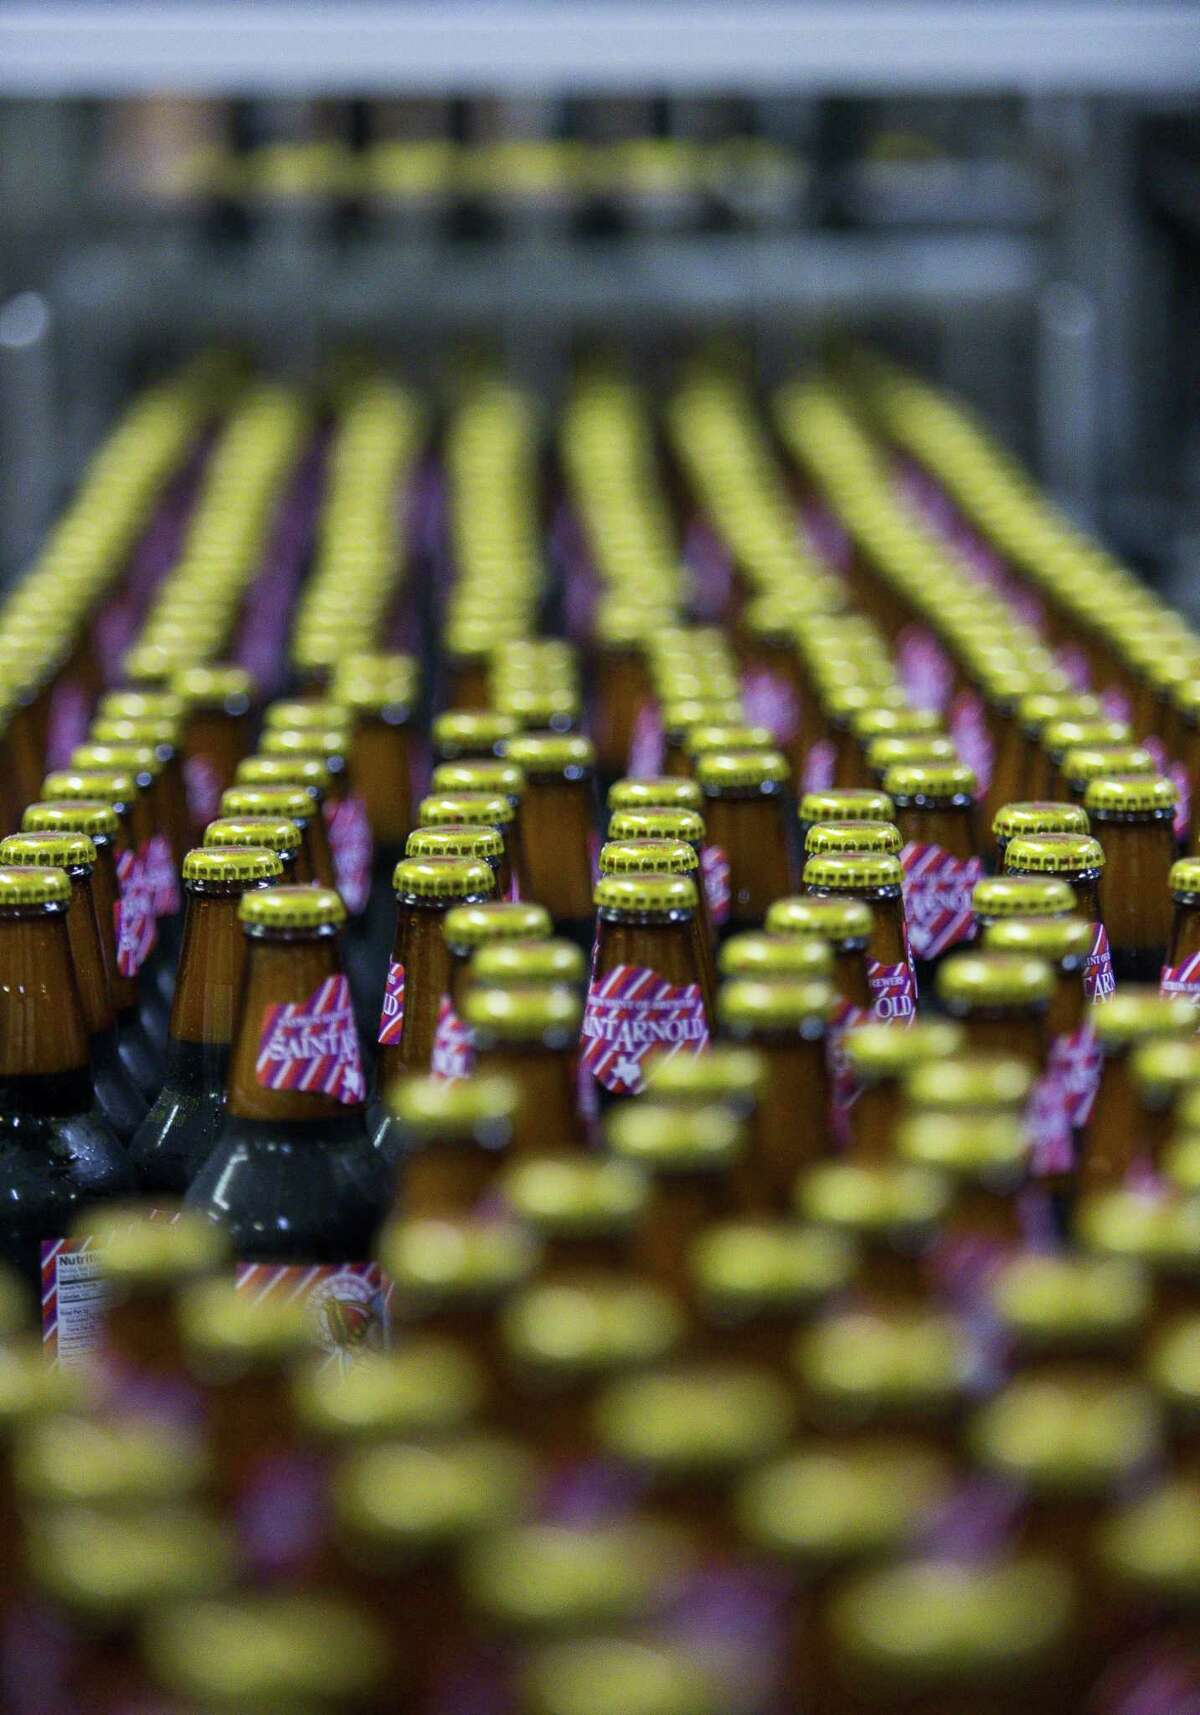 Bottles of Saint Arnold Brewing Company Root Beer make their way down a conveyer to be packaged at the brewery's facility just outside of downtown Houston, Wednesday, May 15, 2019. The brewery, started by Brock Wagner, will celebrate its 25th anniversary this June. Wagner started experimenting with brewing as an undergrad at Rice University, and after leaving his first career in finance, he started Houston's oldest craft brewery in 1994.